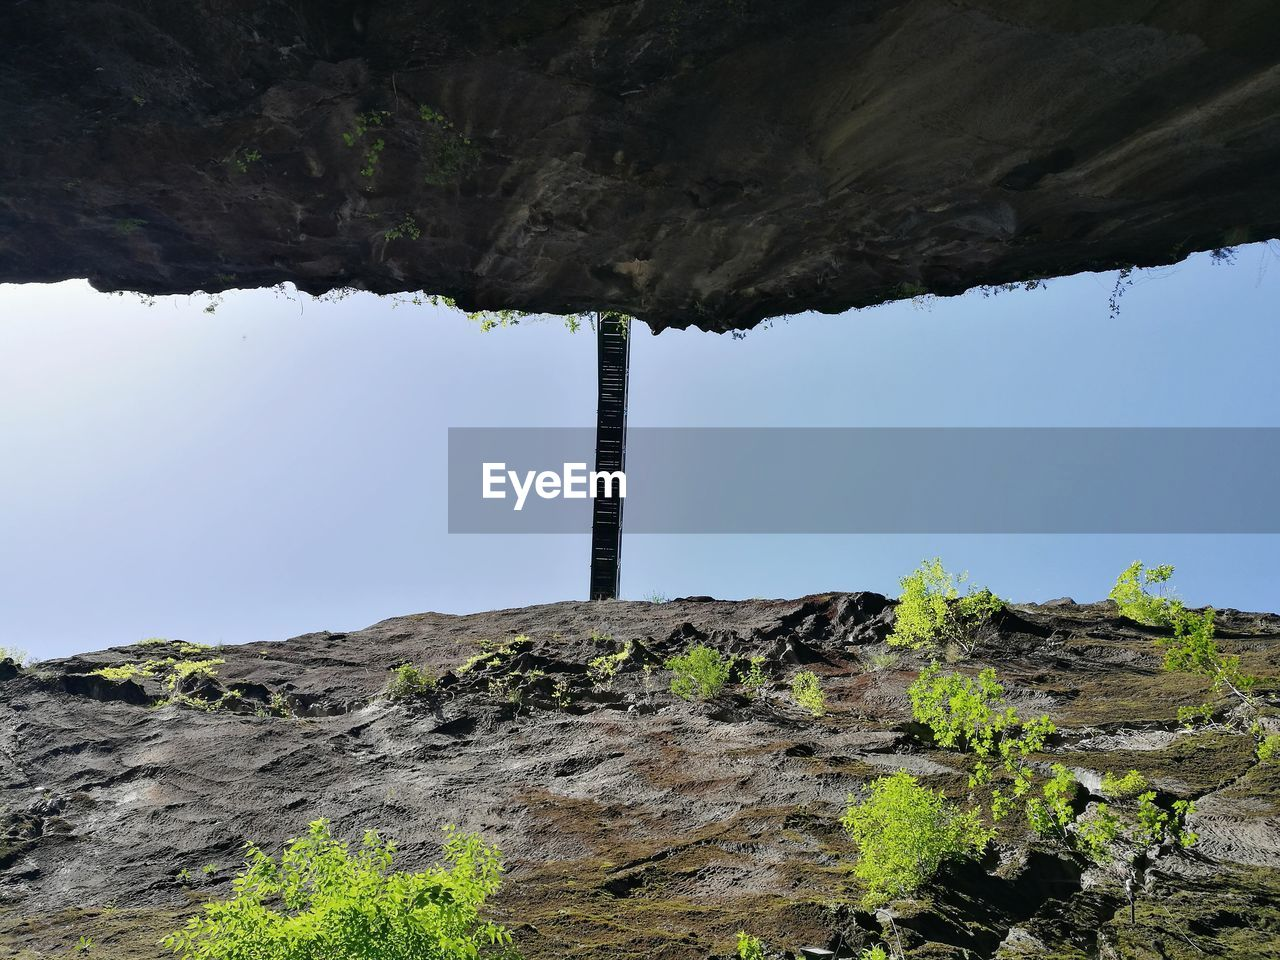 sky, nature, low angle view, rock, day, architecture, rock - object, no people, built structure, solid, mountain, outdoors, tranquility, beauty in nature, rock formation, scenics - nature, plant, tranquil scene, clear sky, environment